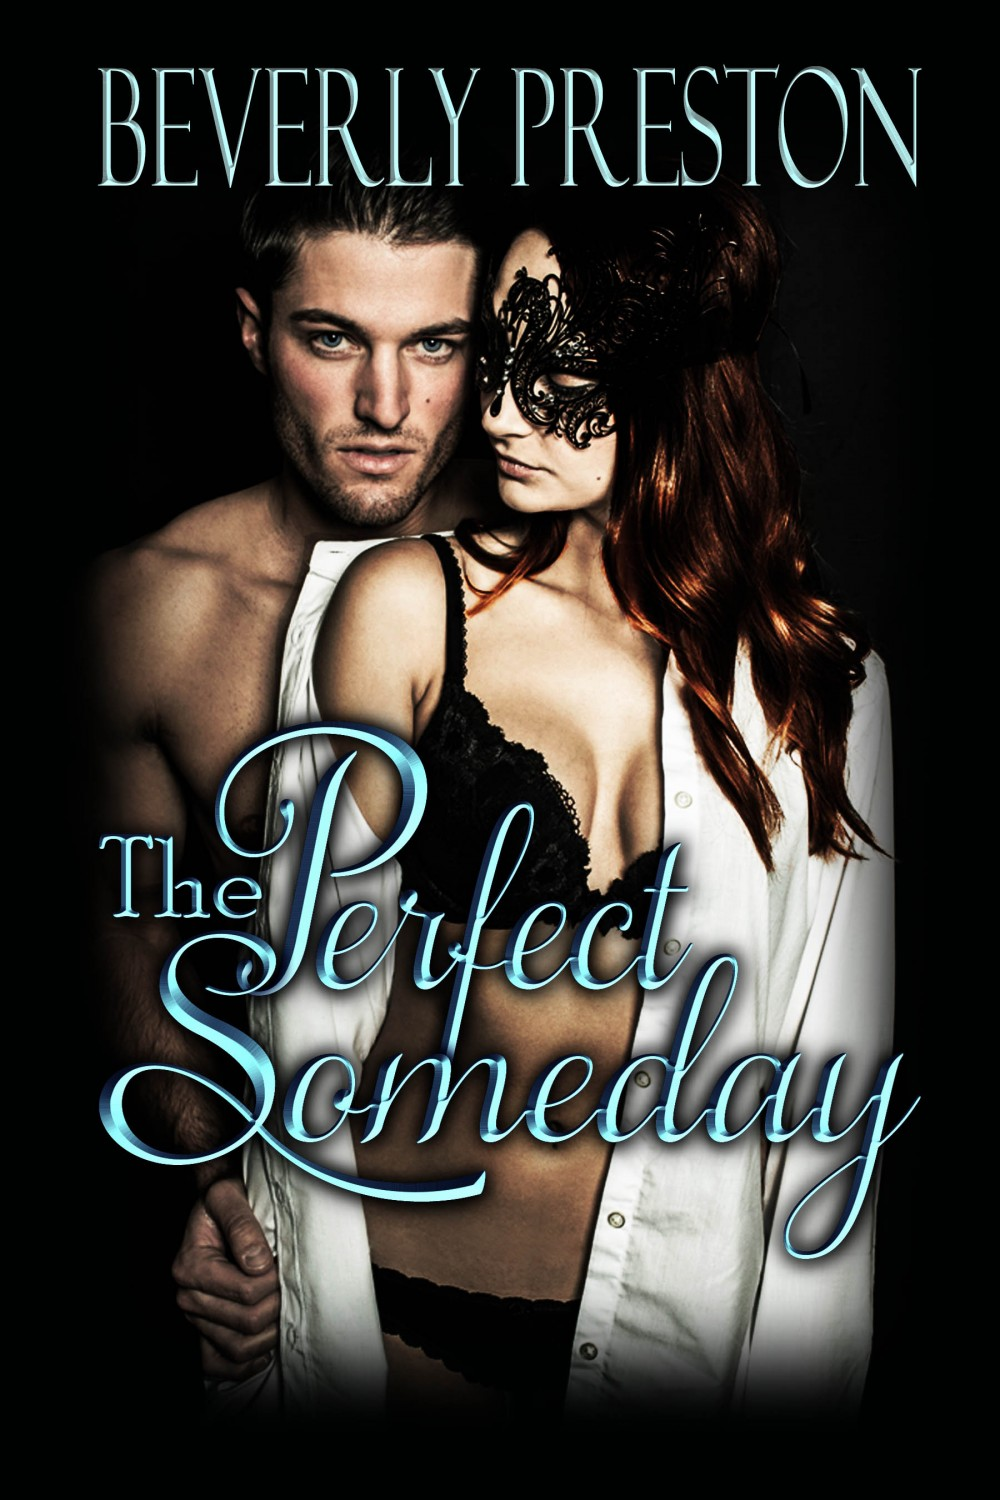 The Perfect Someday FINAL FRONT 03262014 WEB - Copy (3)